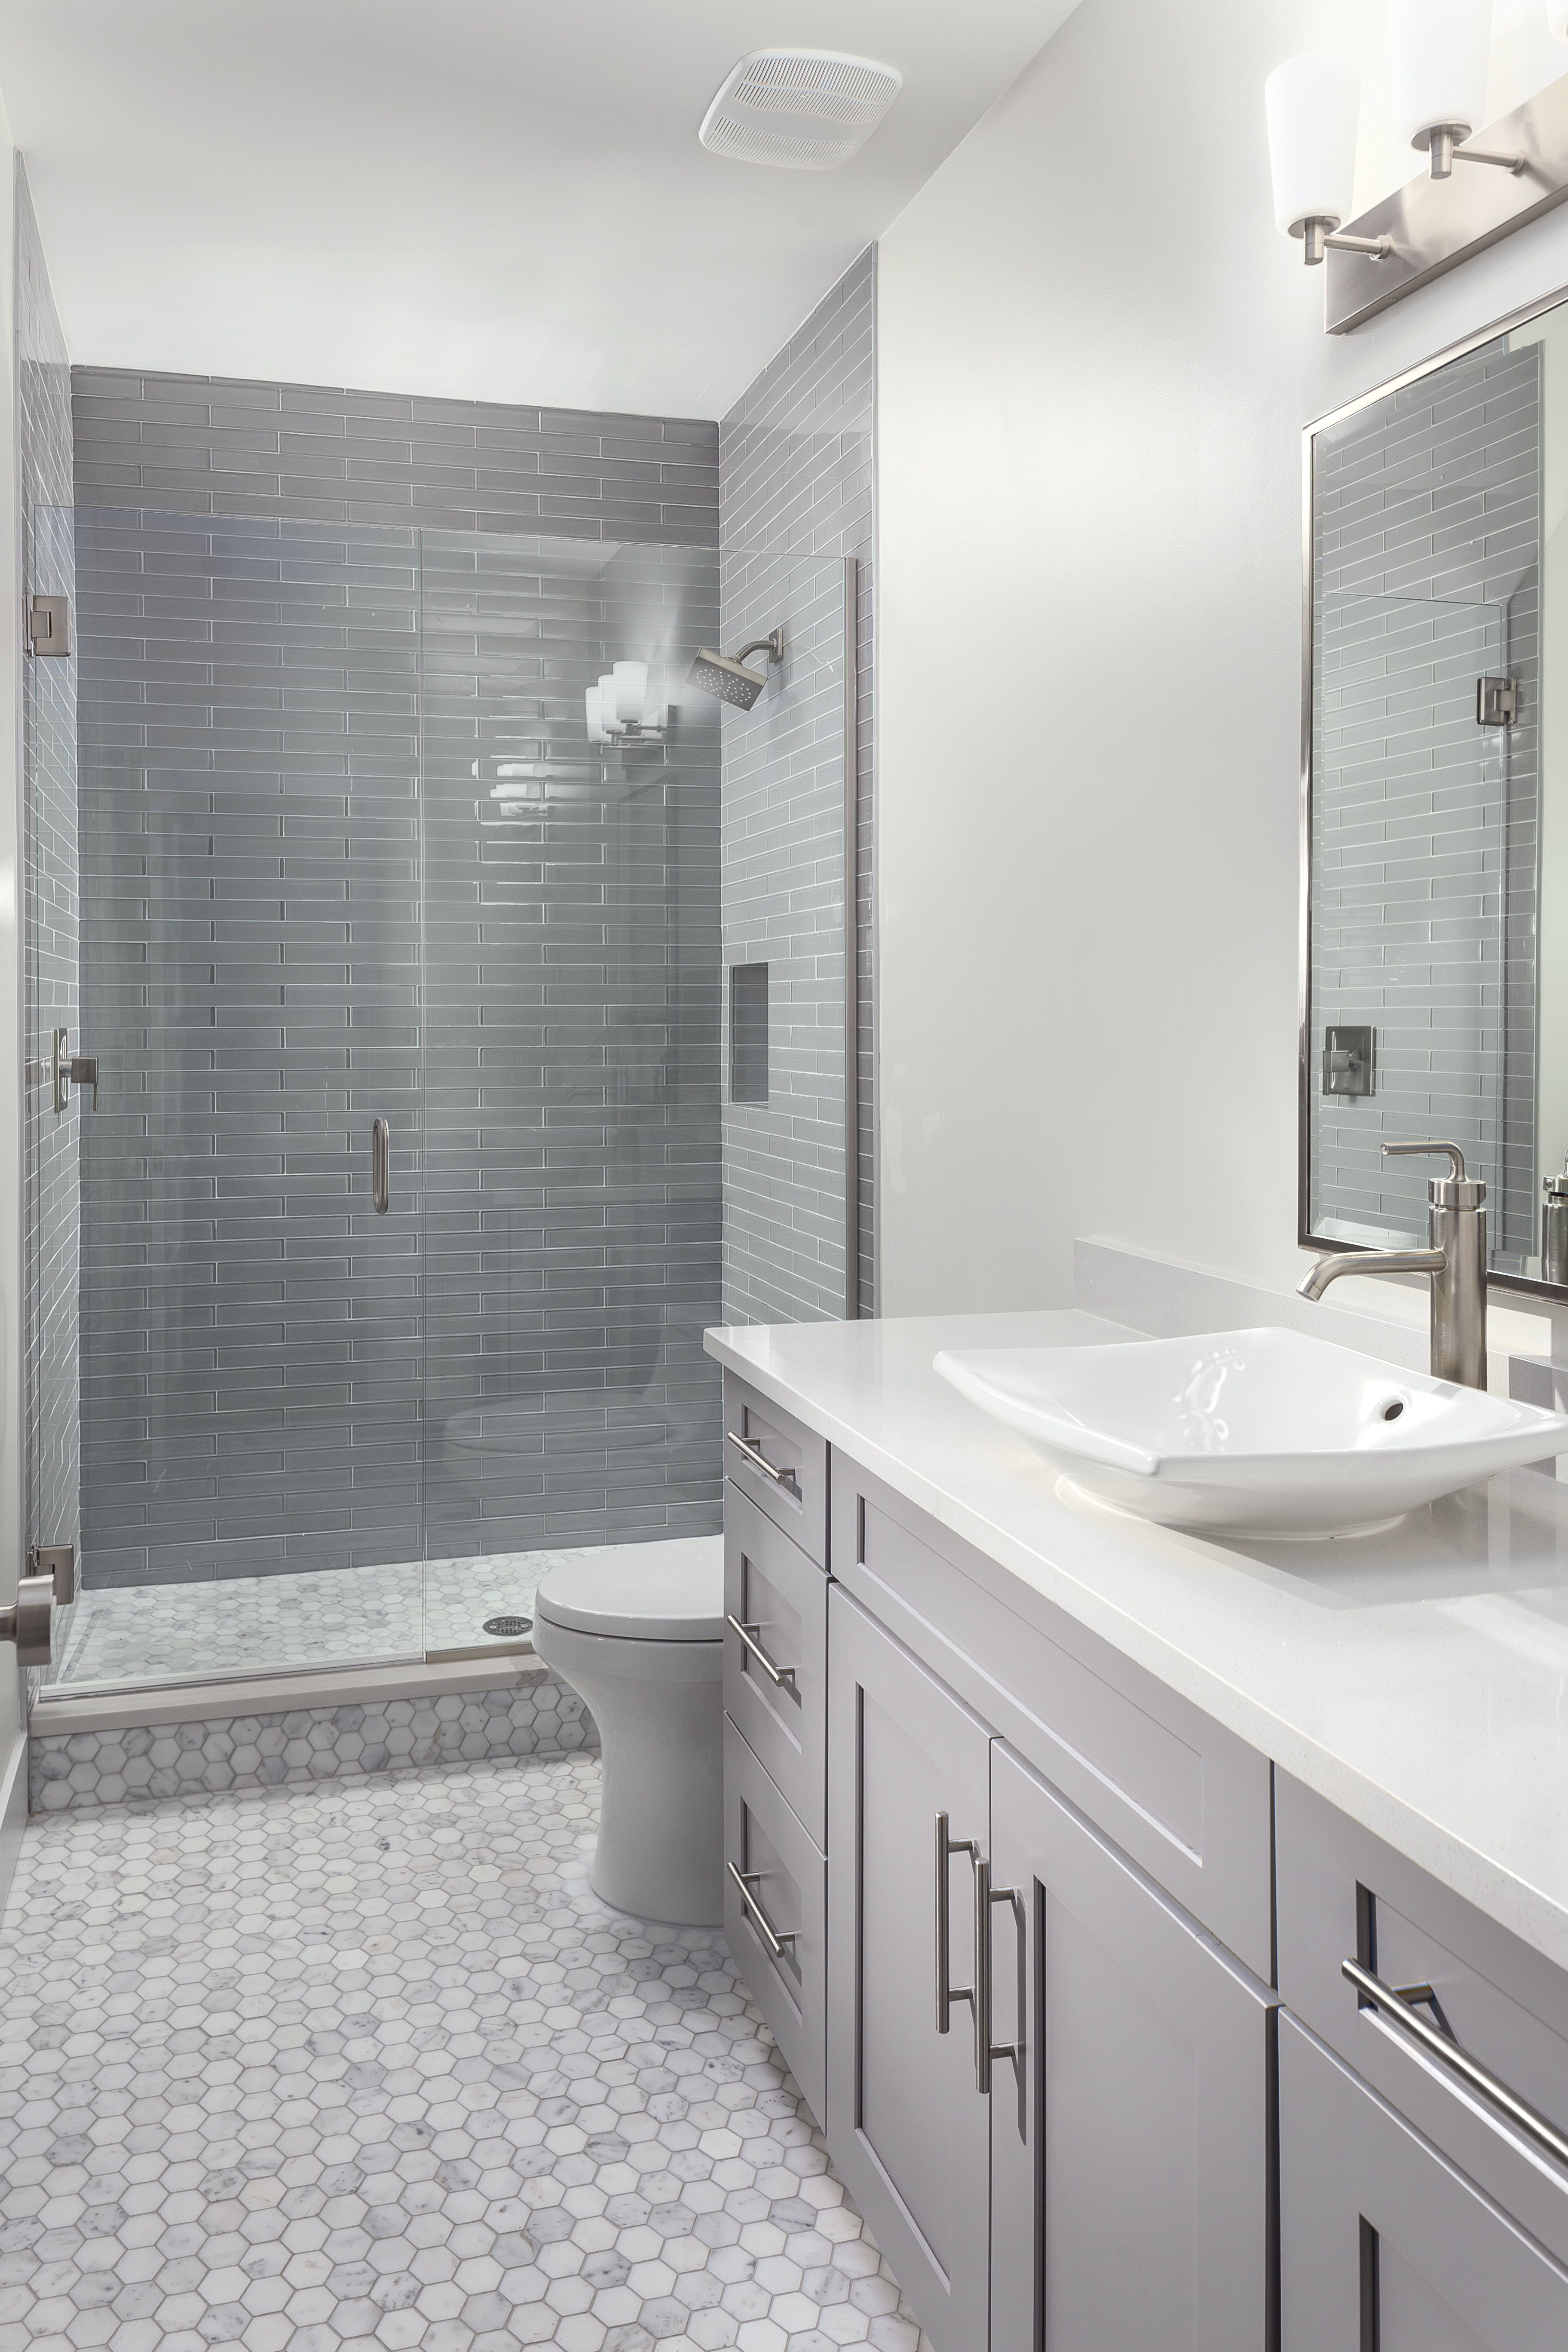 Pin By Morrone Interiors On Rockwood Rockwood Bathrooms Remodel